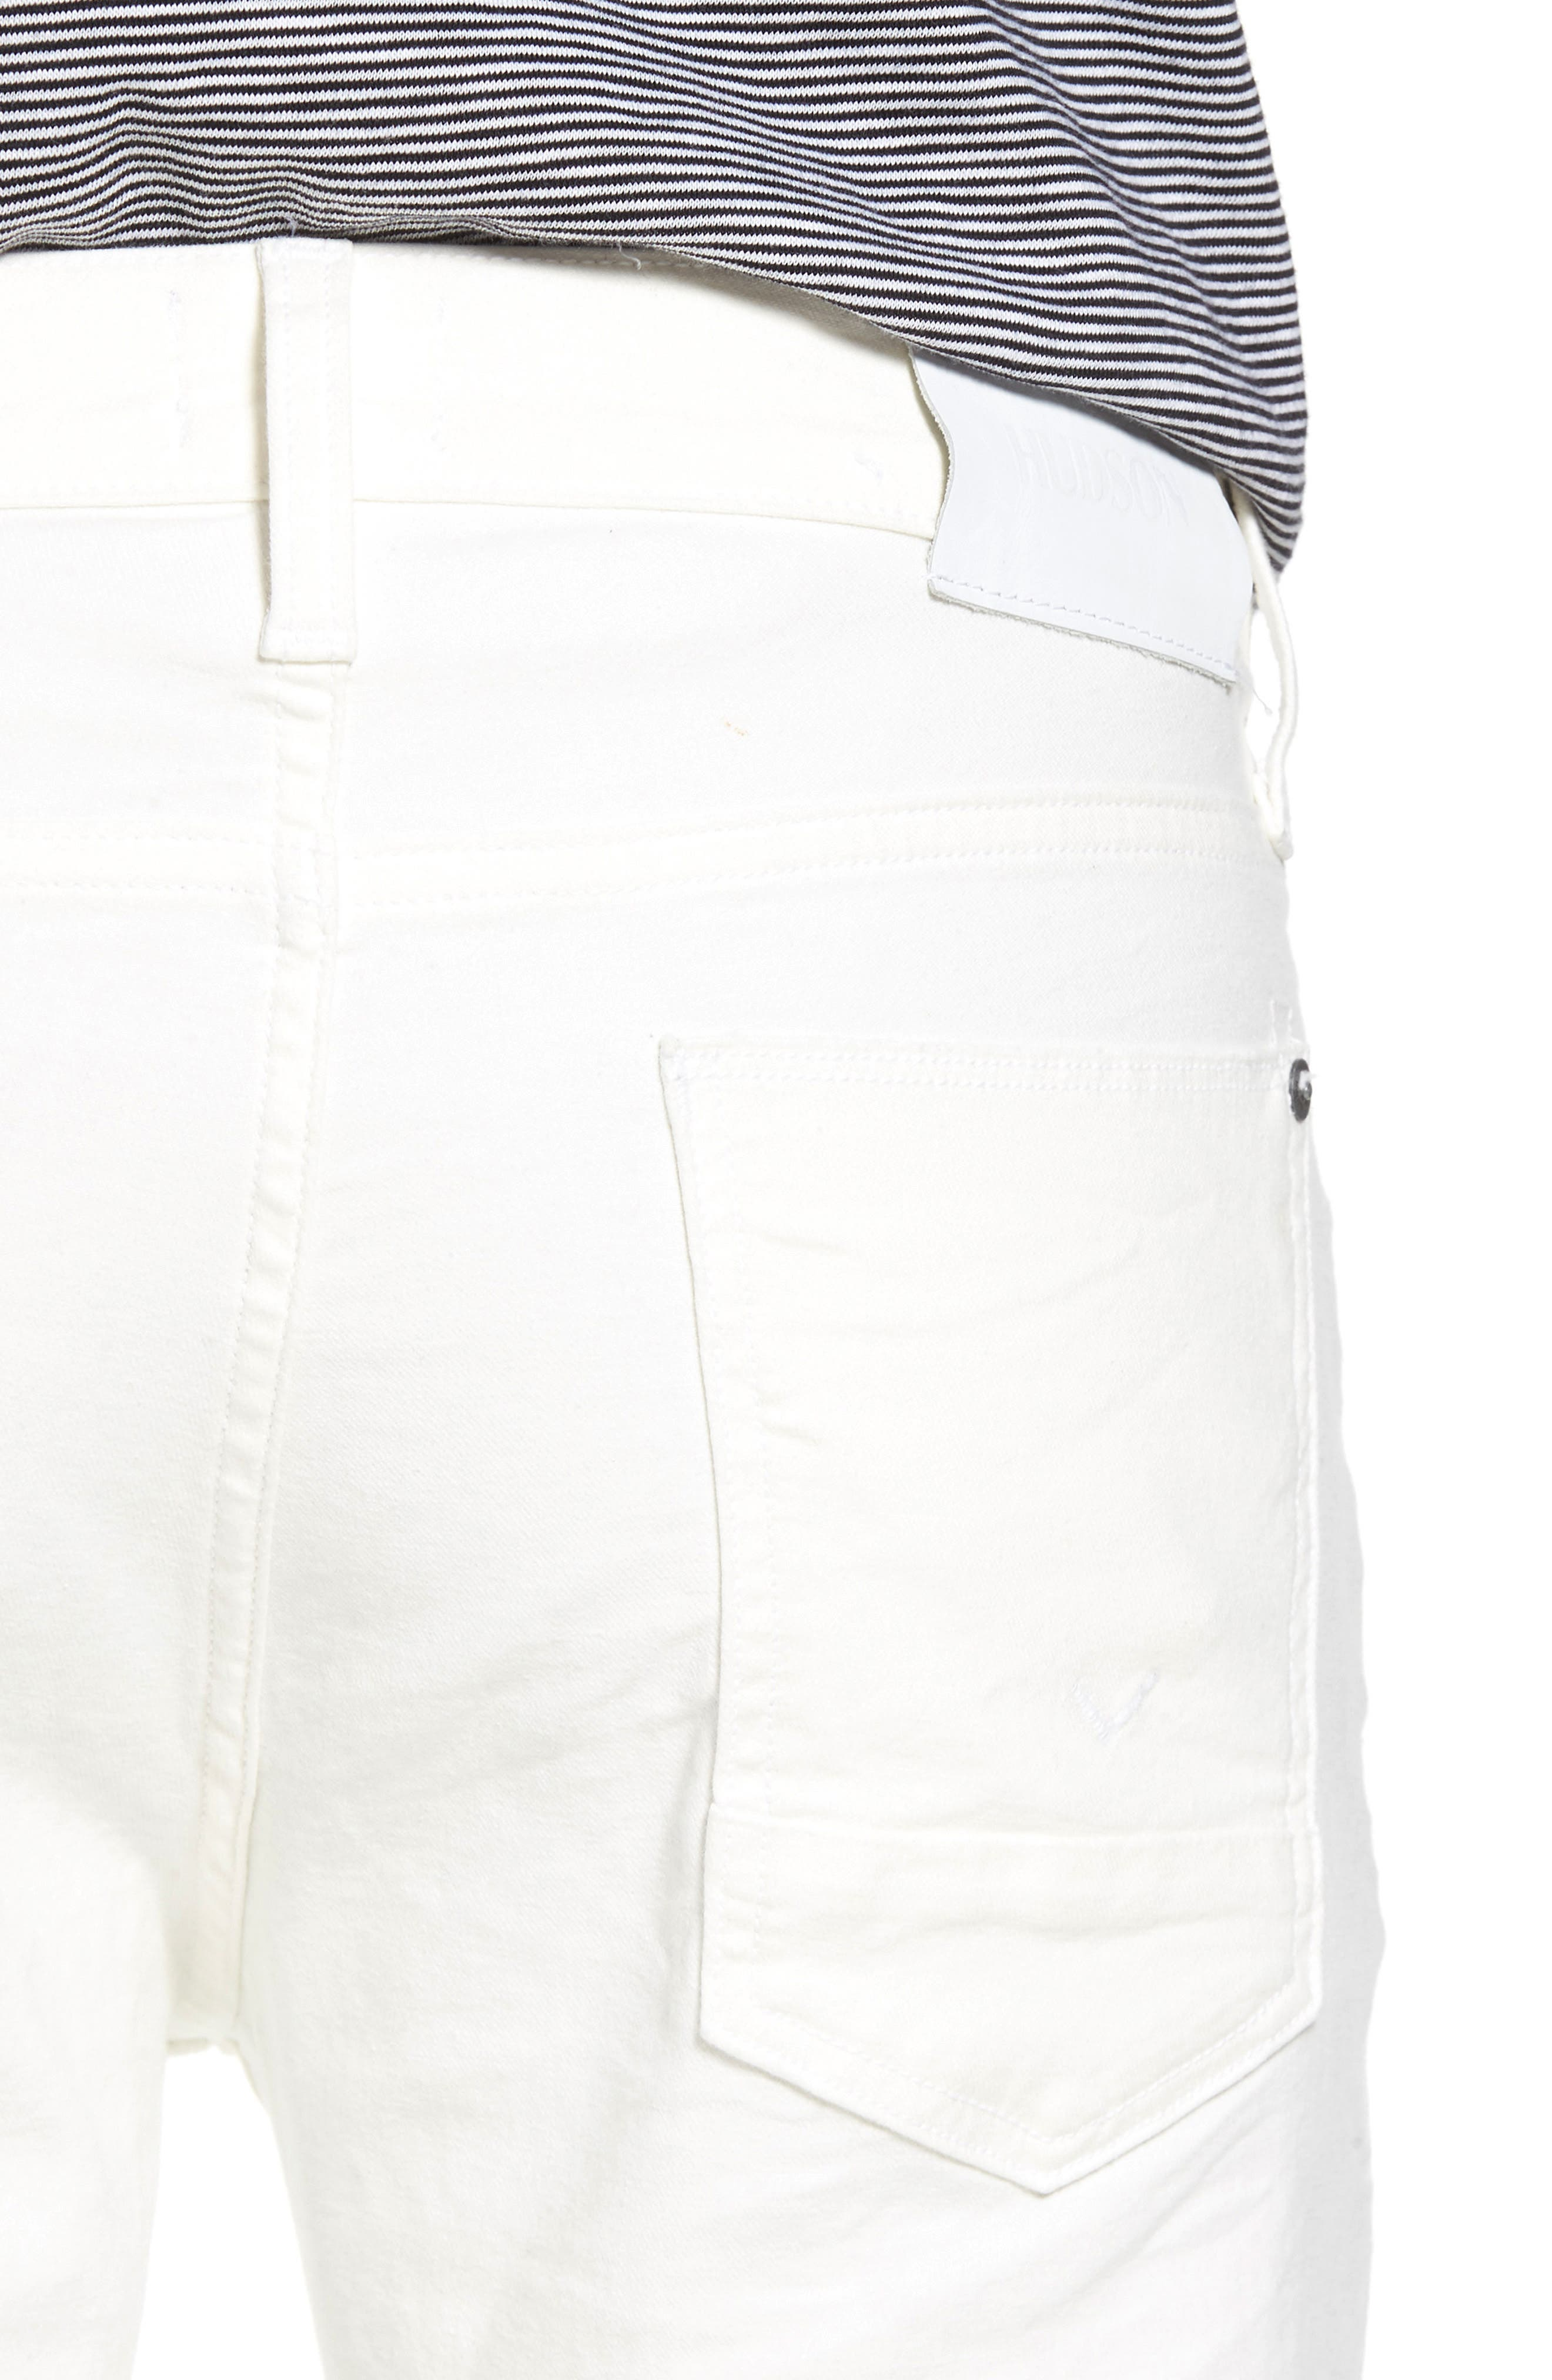 Blake Slim Fit Jeans,                             Alternate thumbnail 4, color,                             110